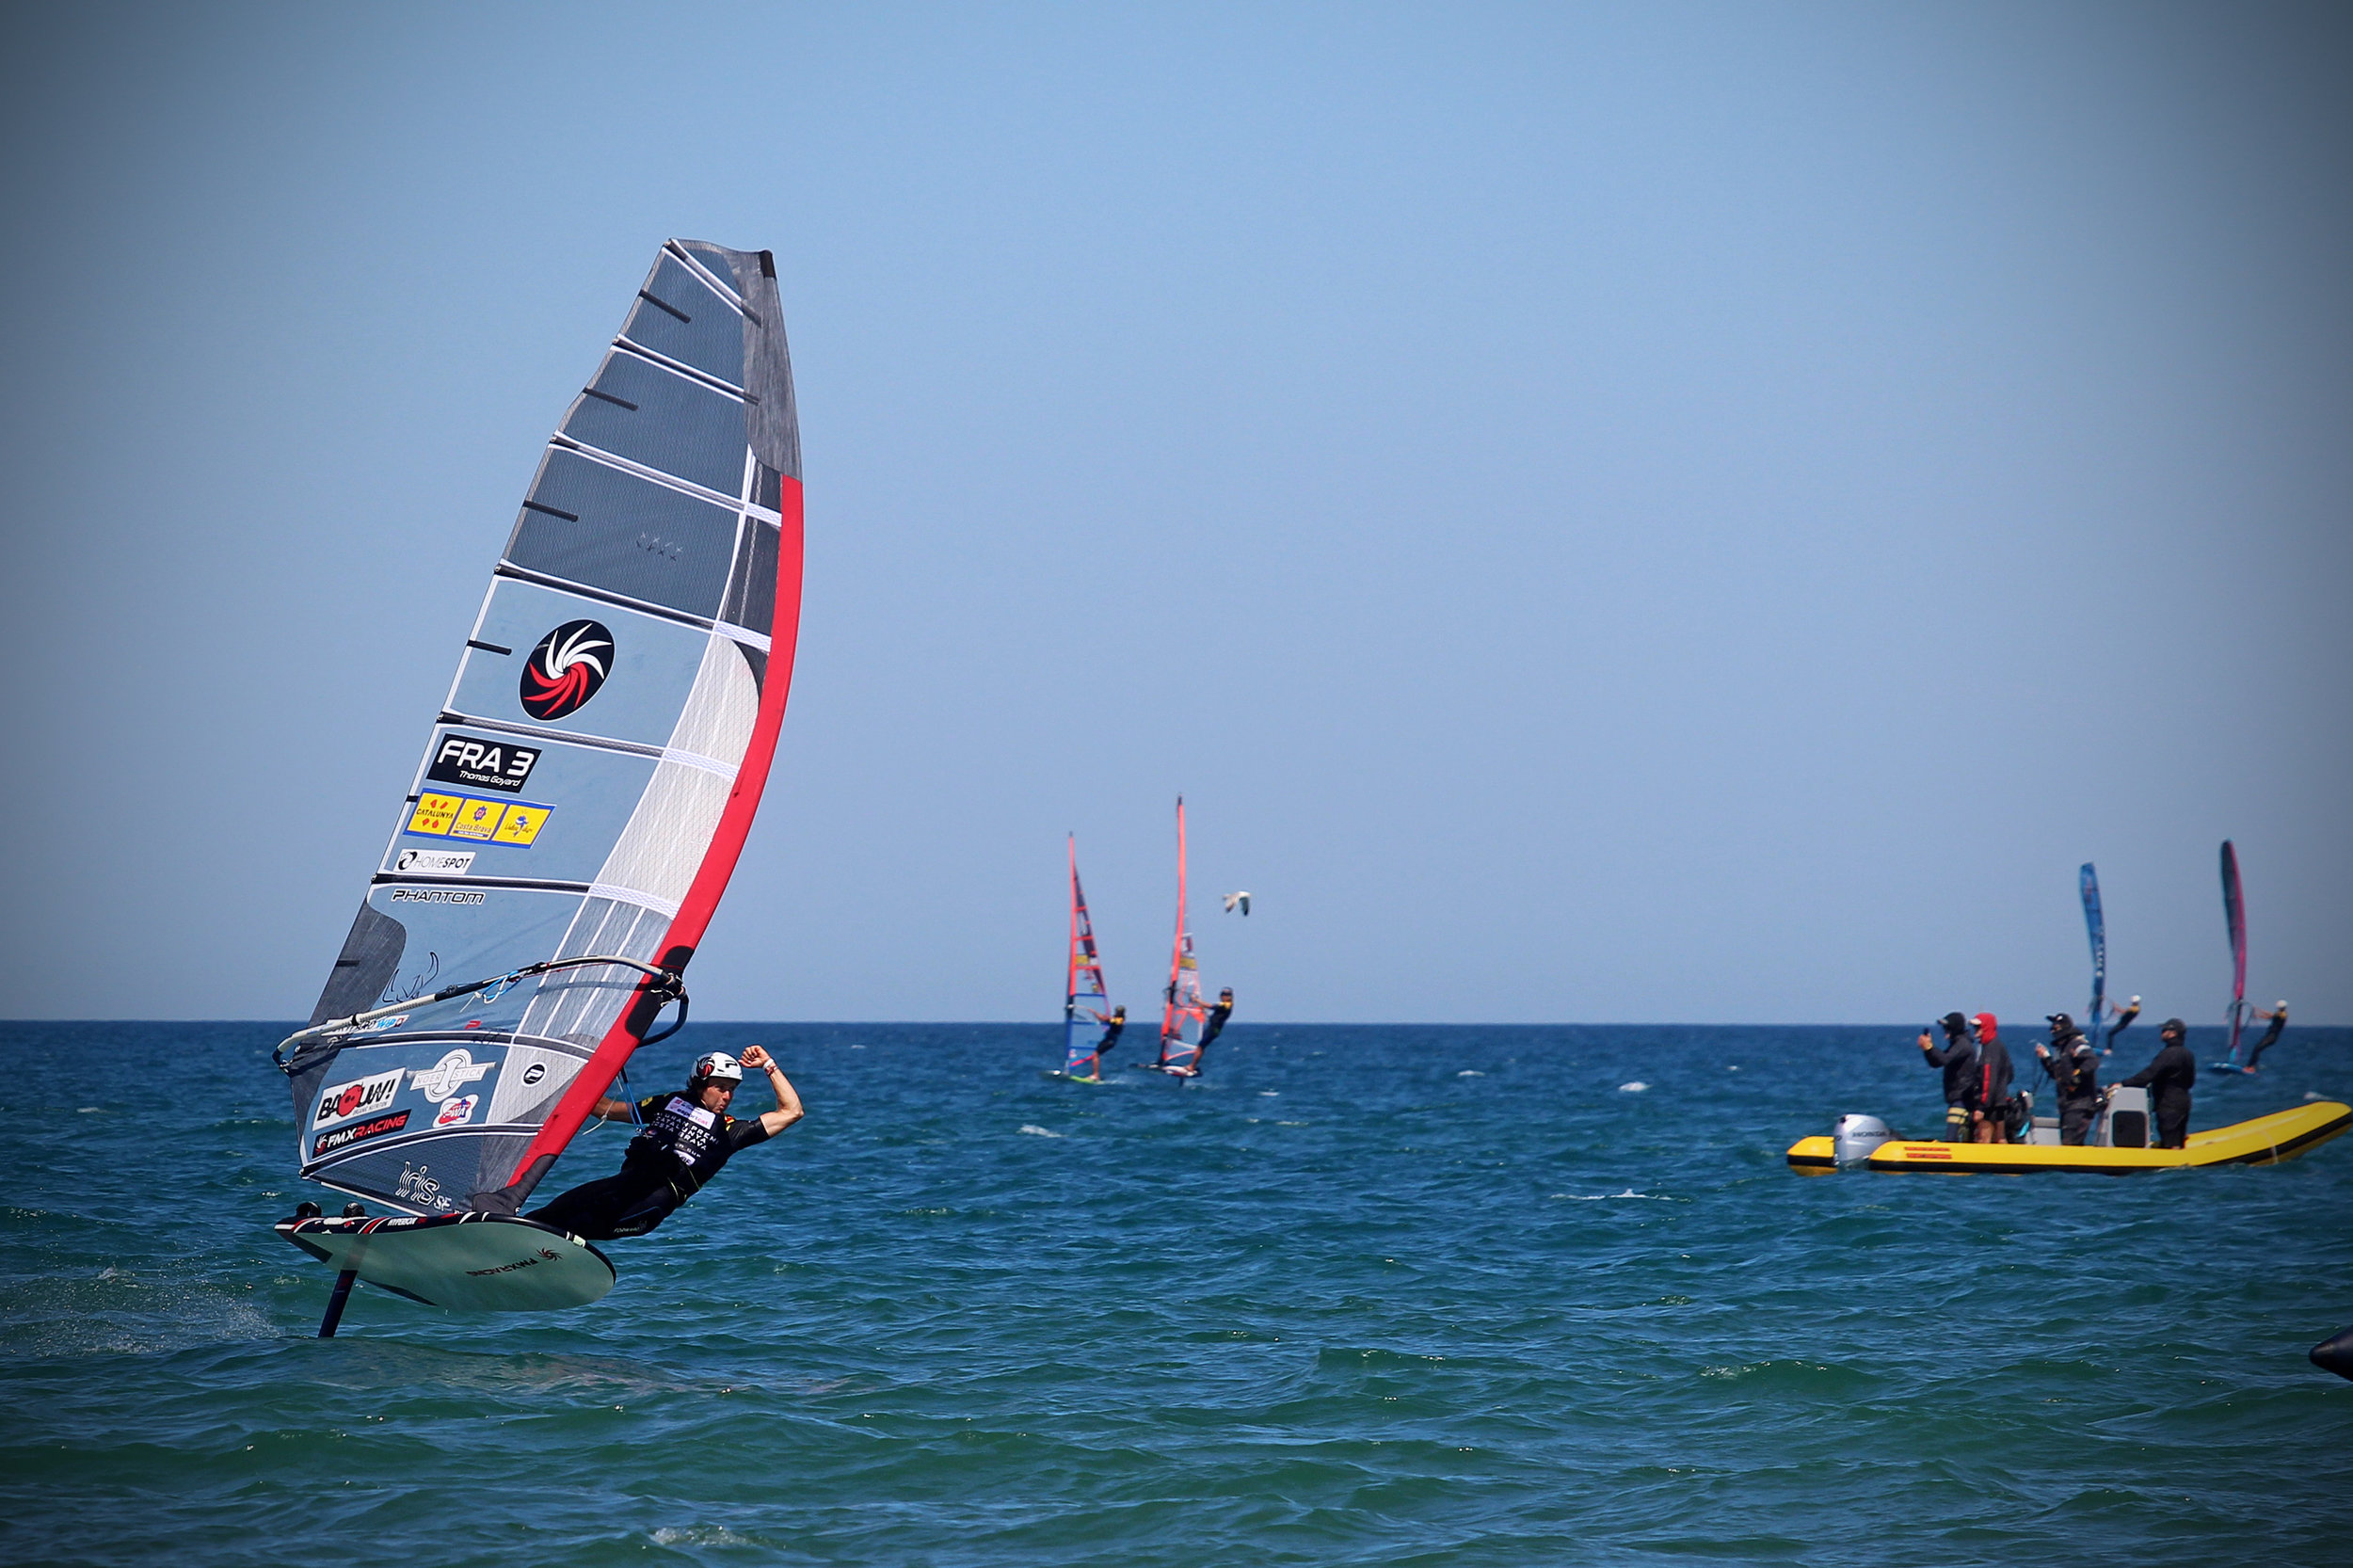 June 2019 - Thomas Goyard wins the PWA world cup event in Costa Brava with Phantom sails and foil